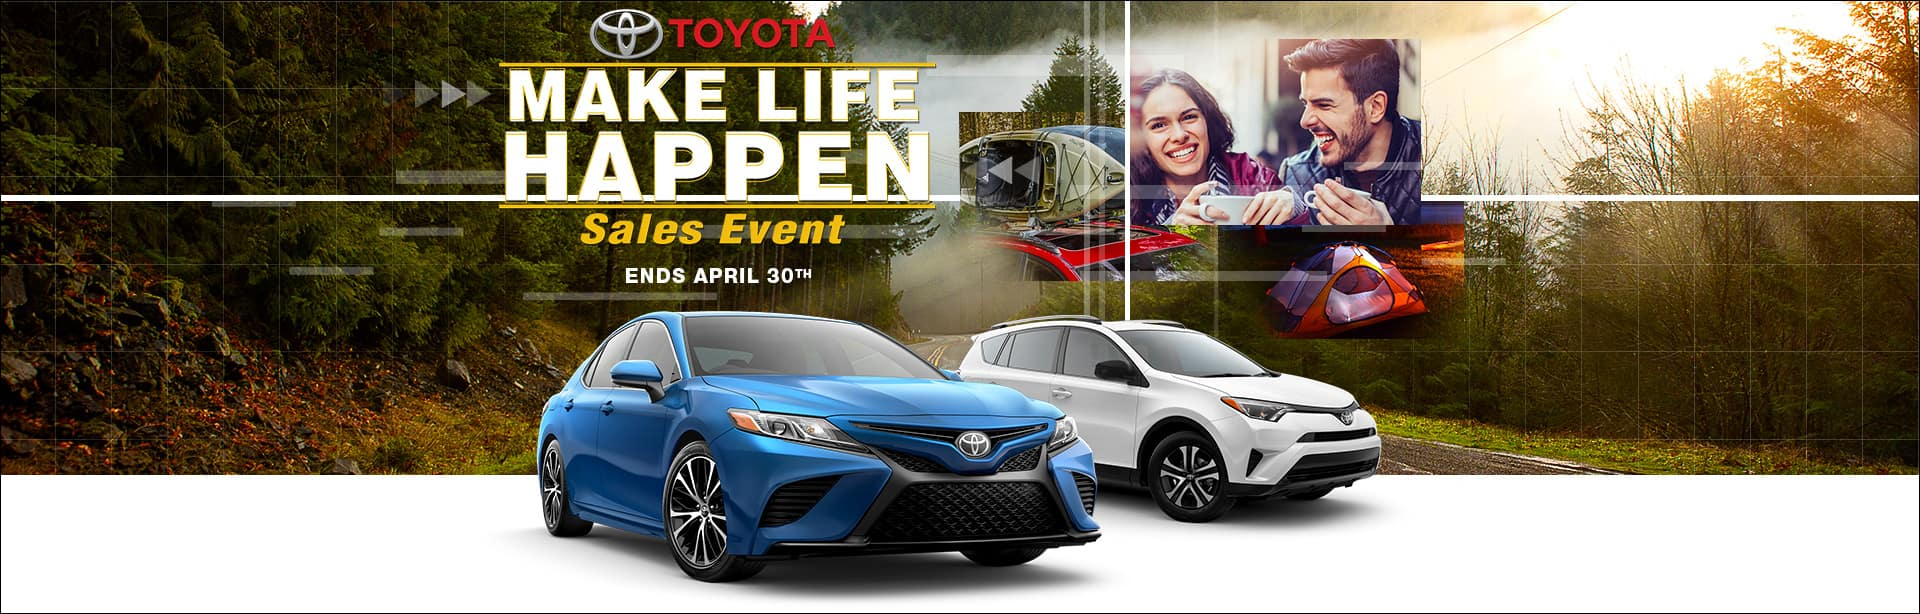 Make Life Happen Sales Event Cain Toyota North Canton Ohio